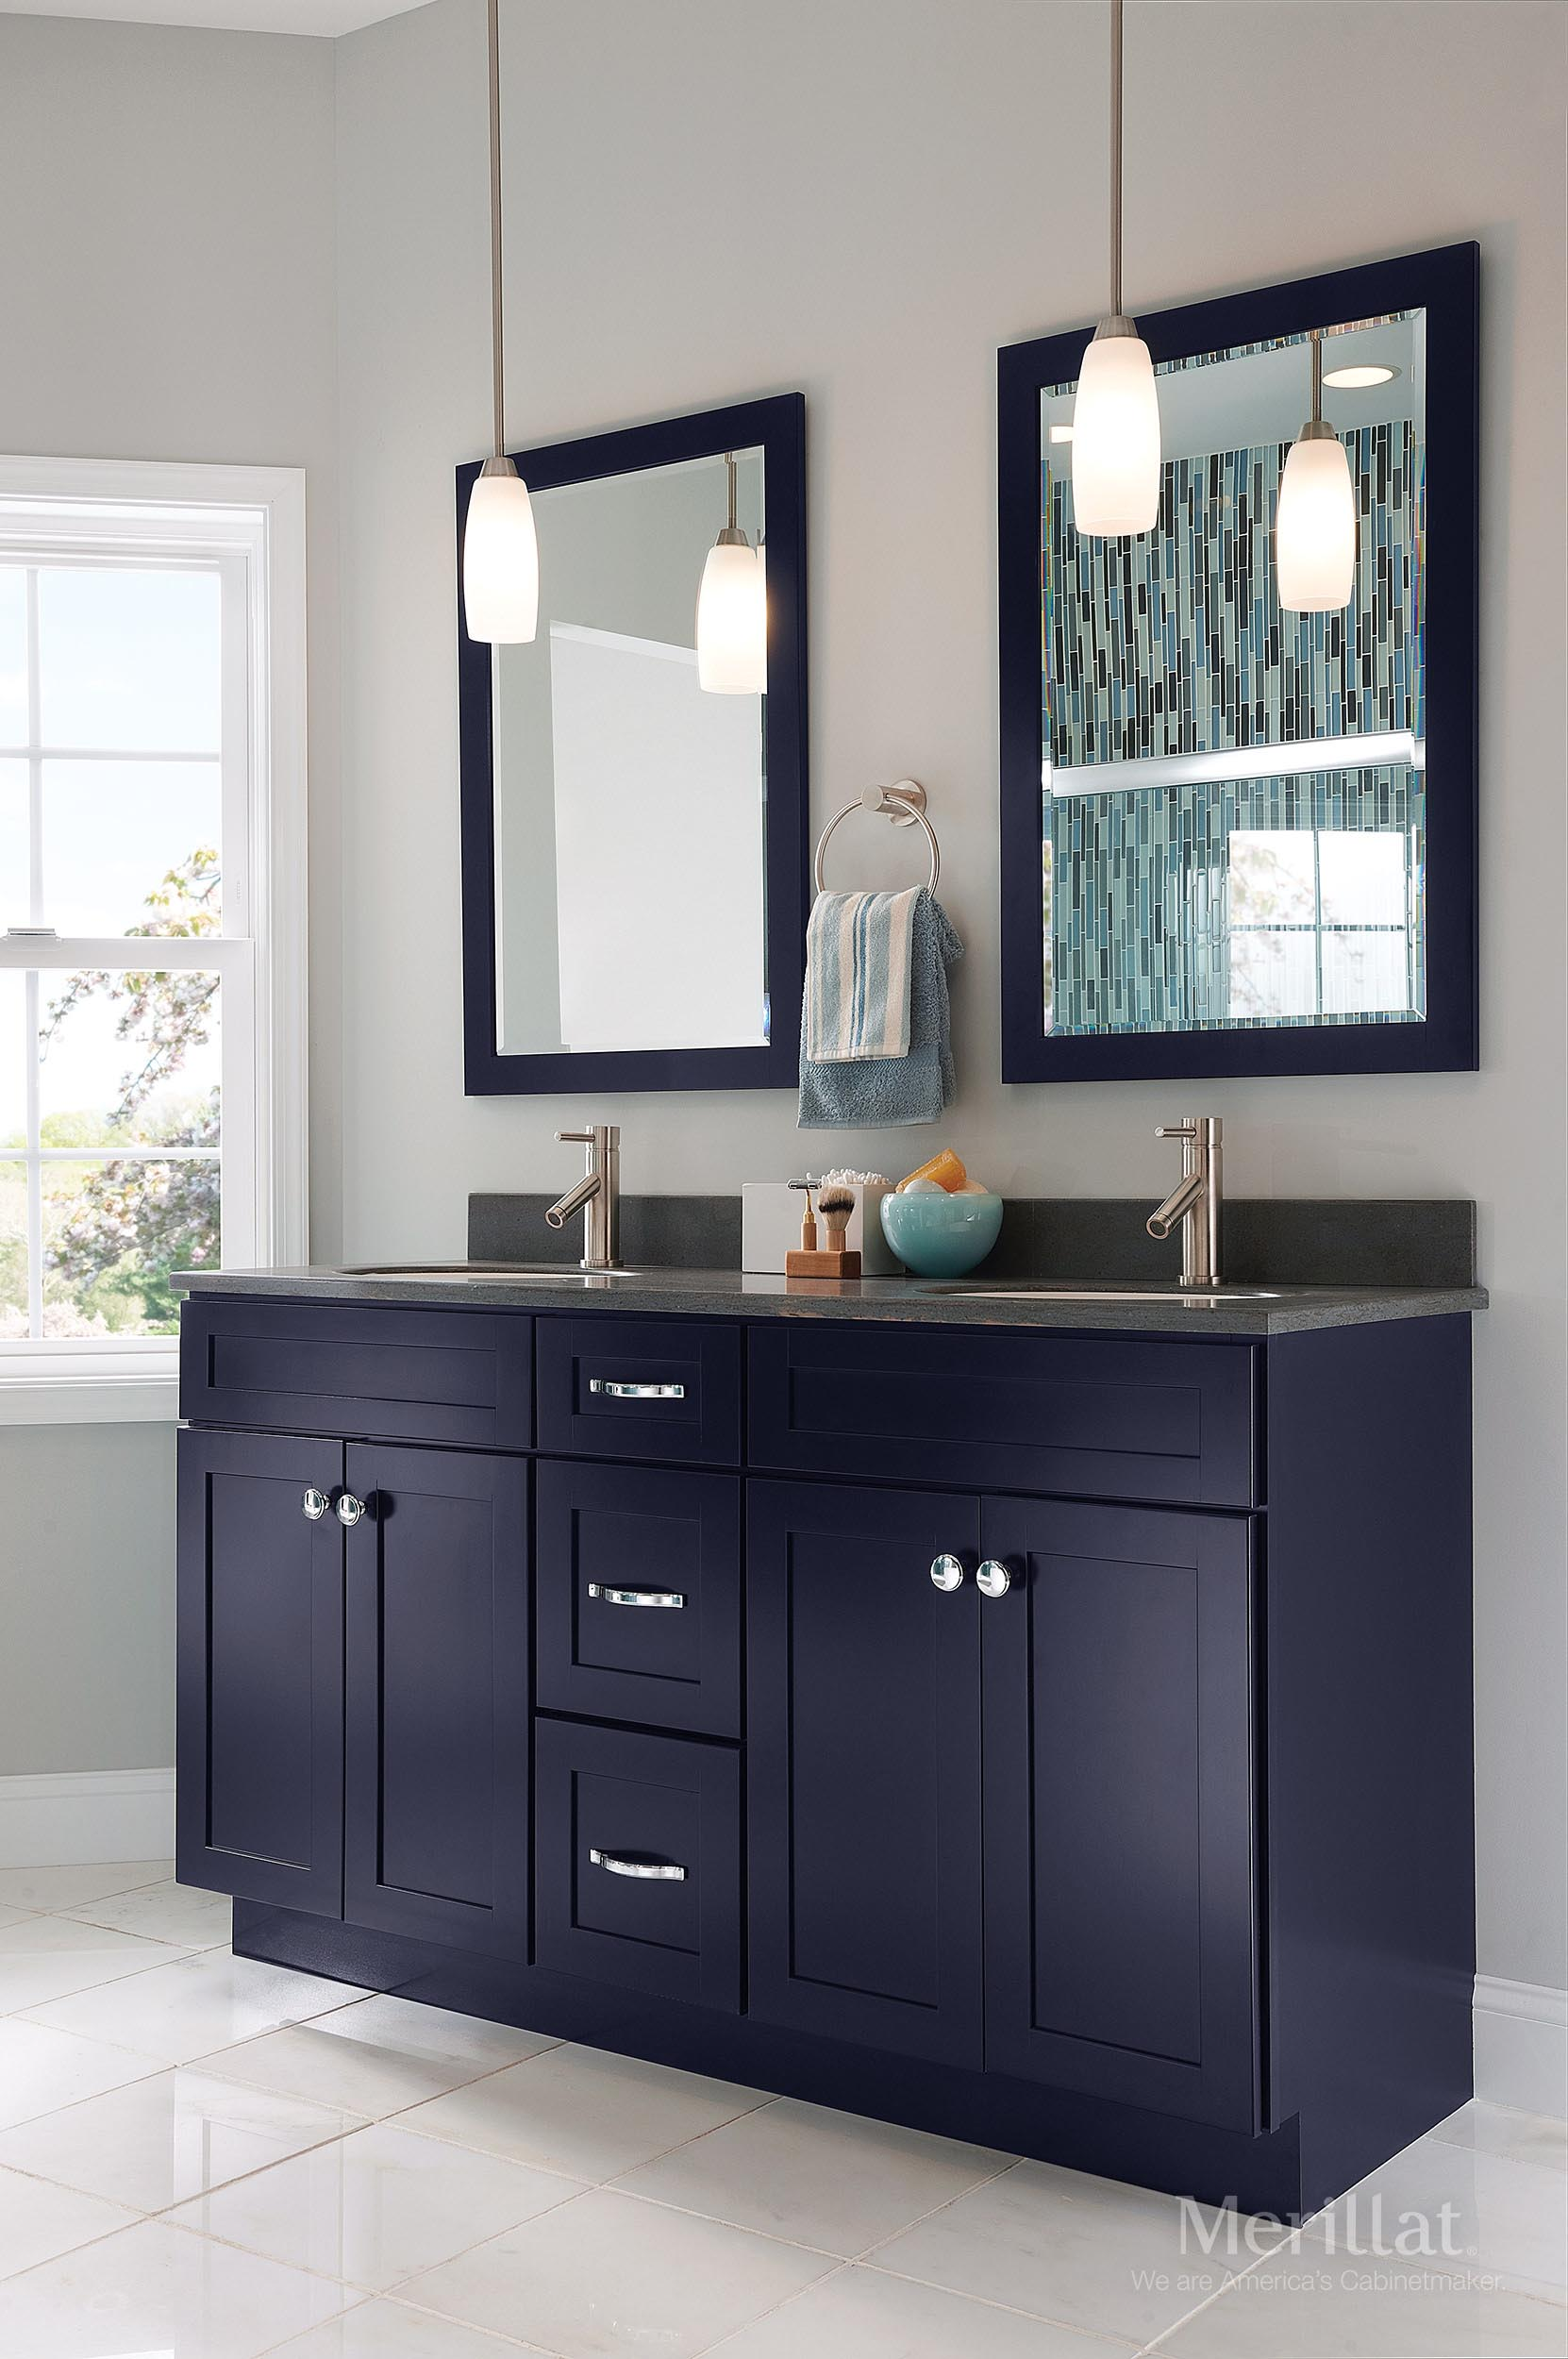 Merillat masterpiece martel in maple midnight painted Kraftmaid bathroom cabinets